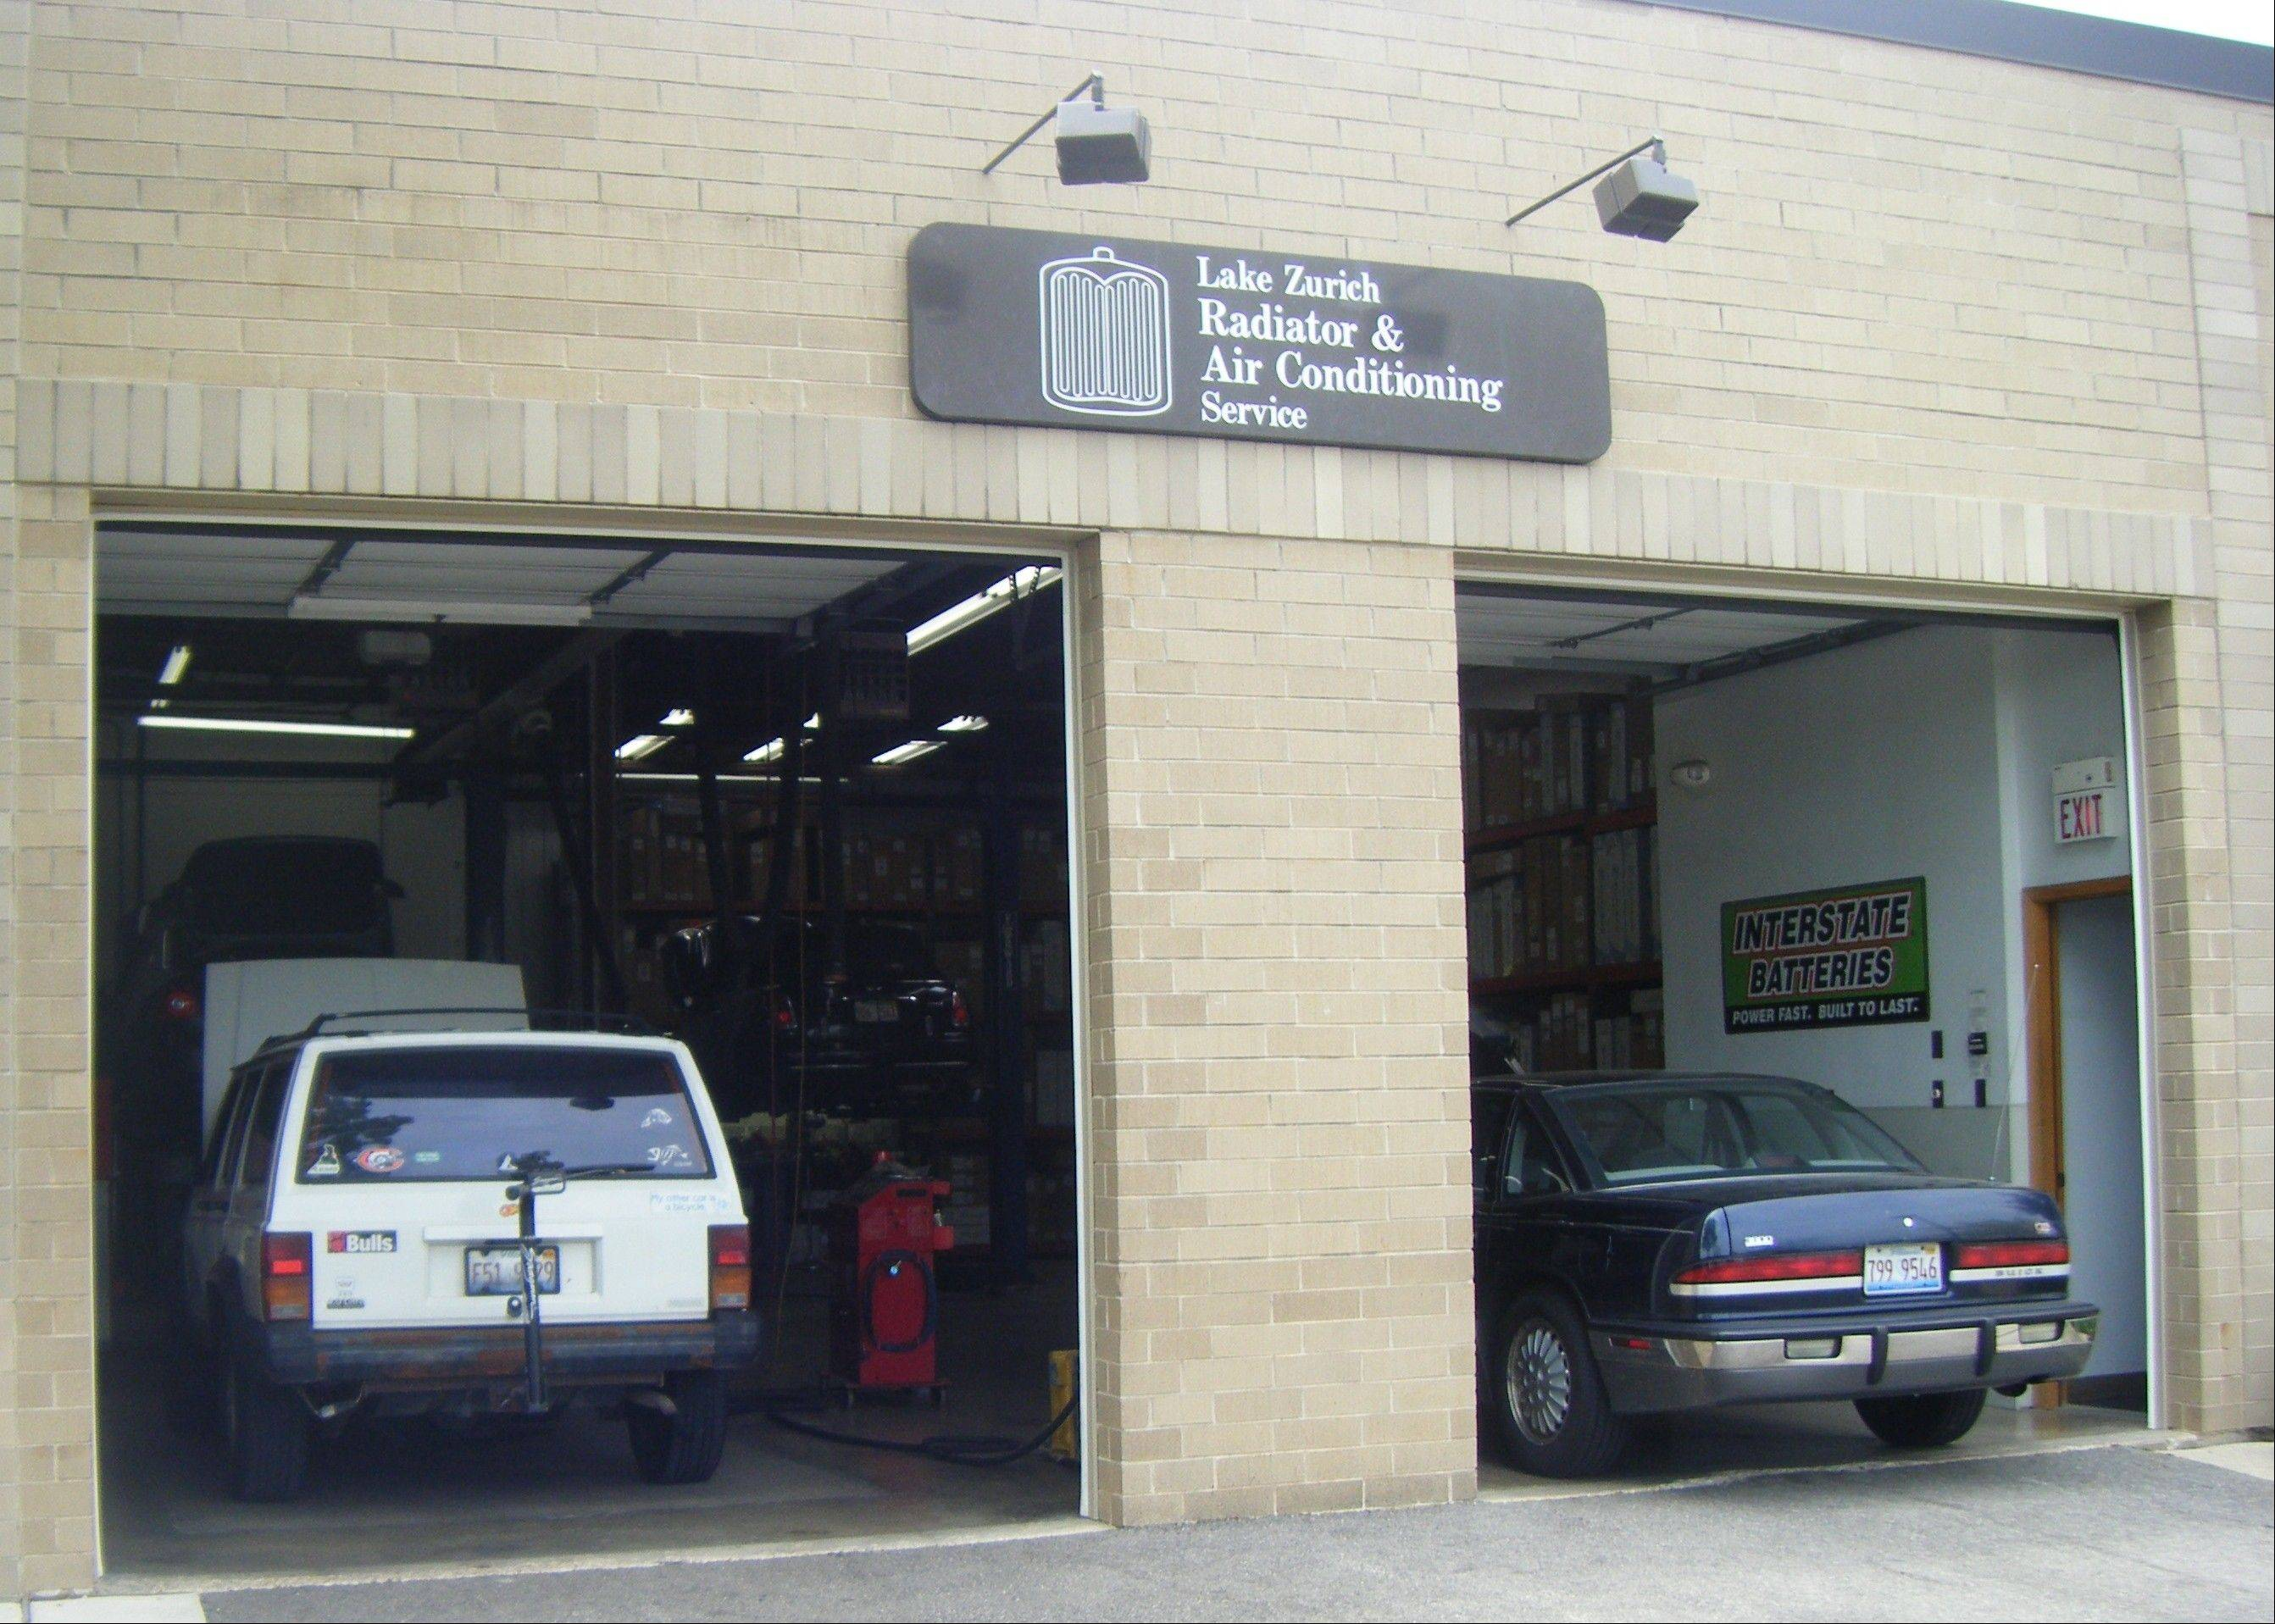 Lake Zurich Radiator & Air Conditioning Service Inc. has been in operation since 1996.